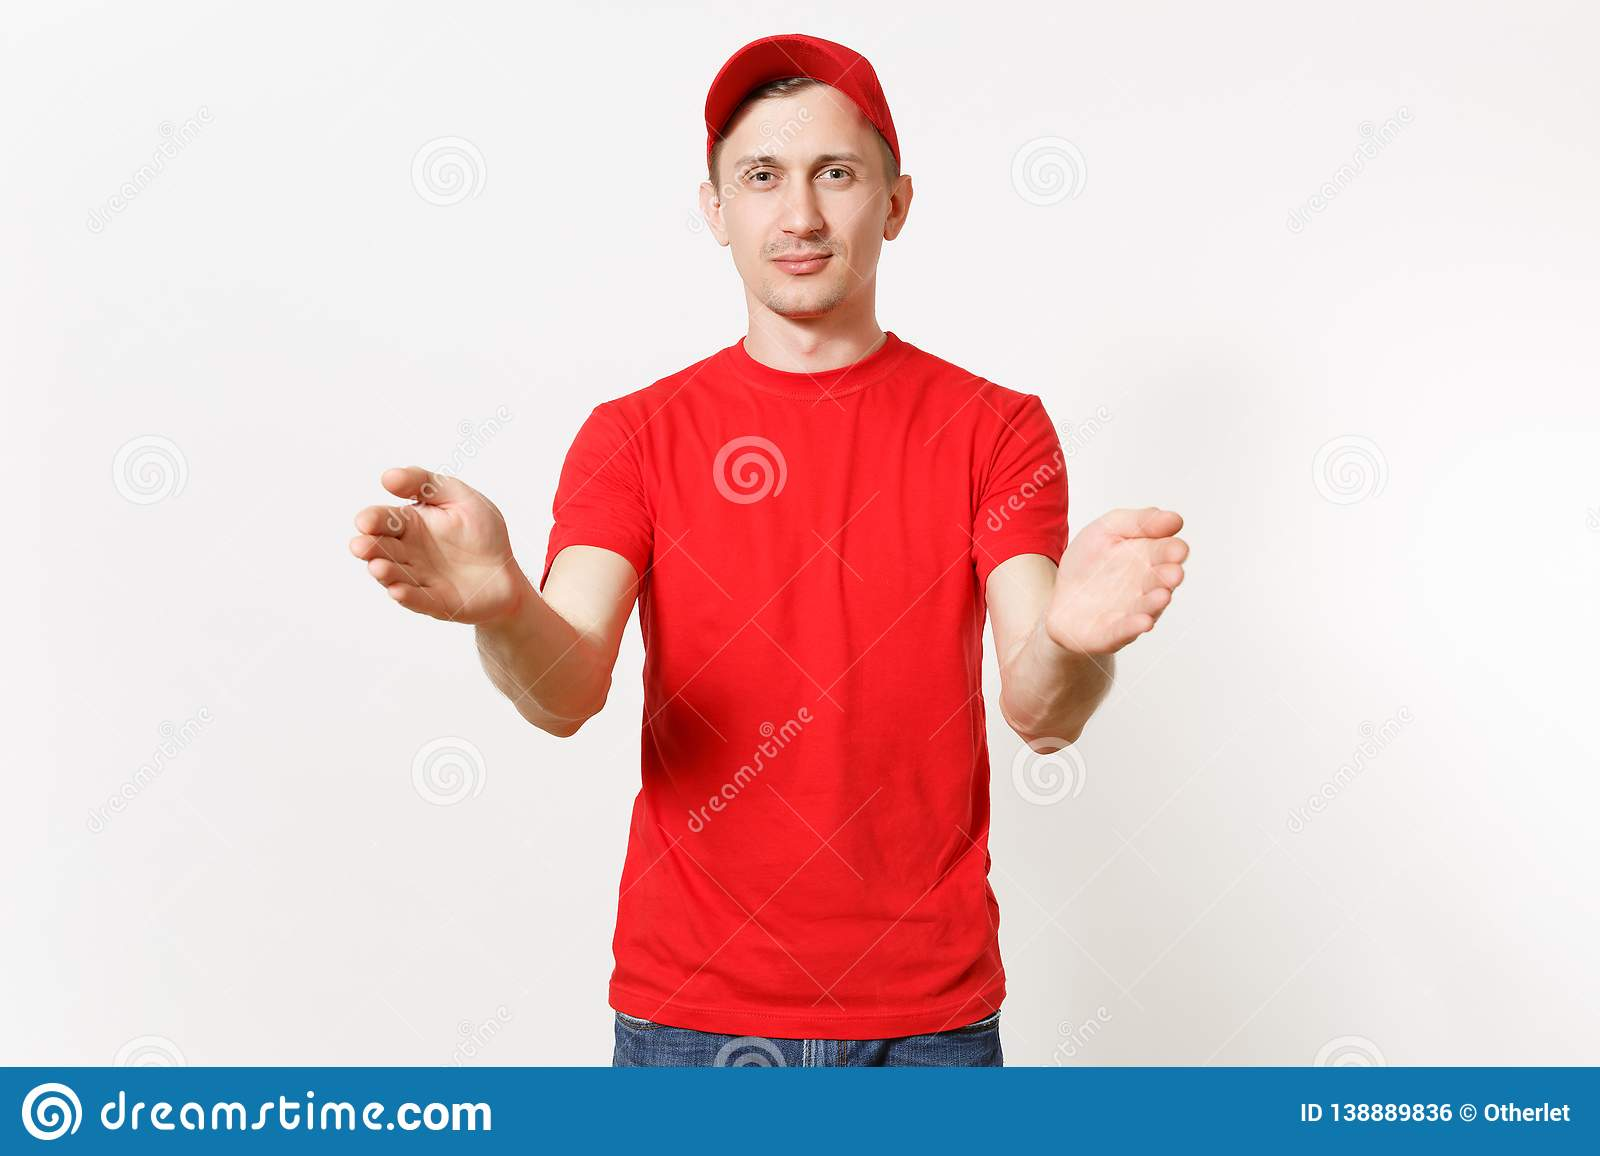 Delivery man in red uniform isolated on white background. Professional male in cap, t-shirt working as courier or dealer